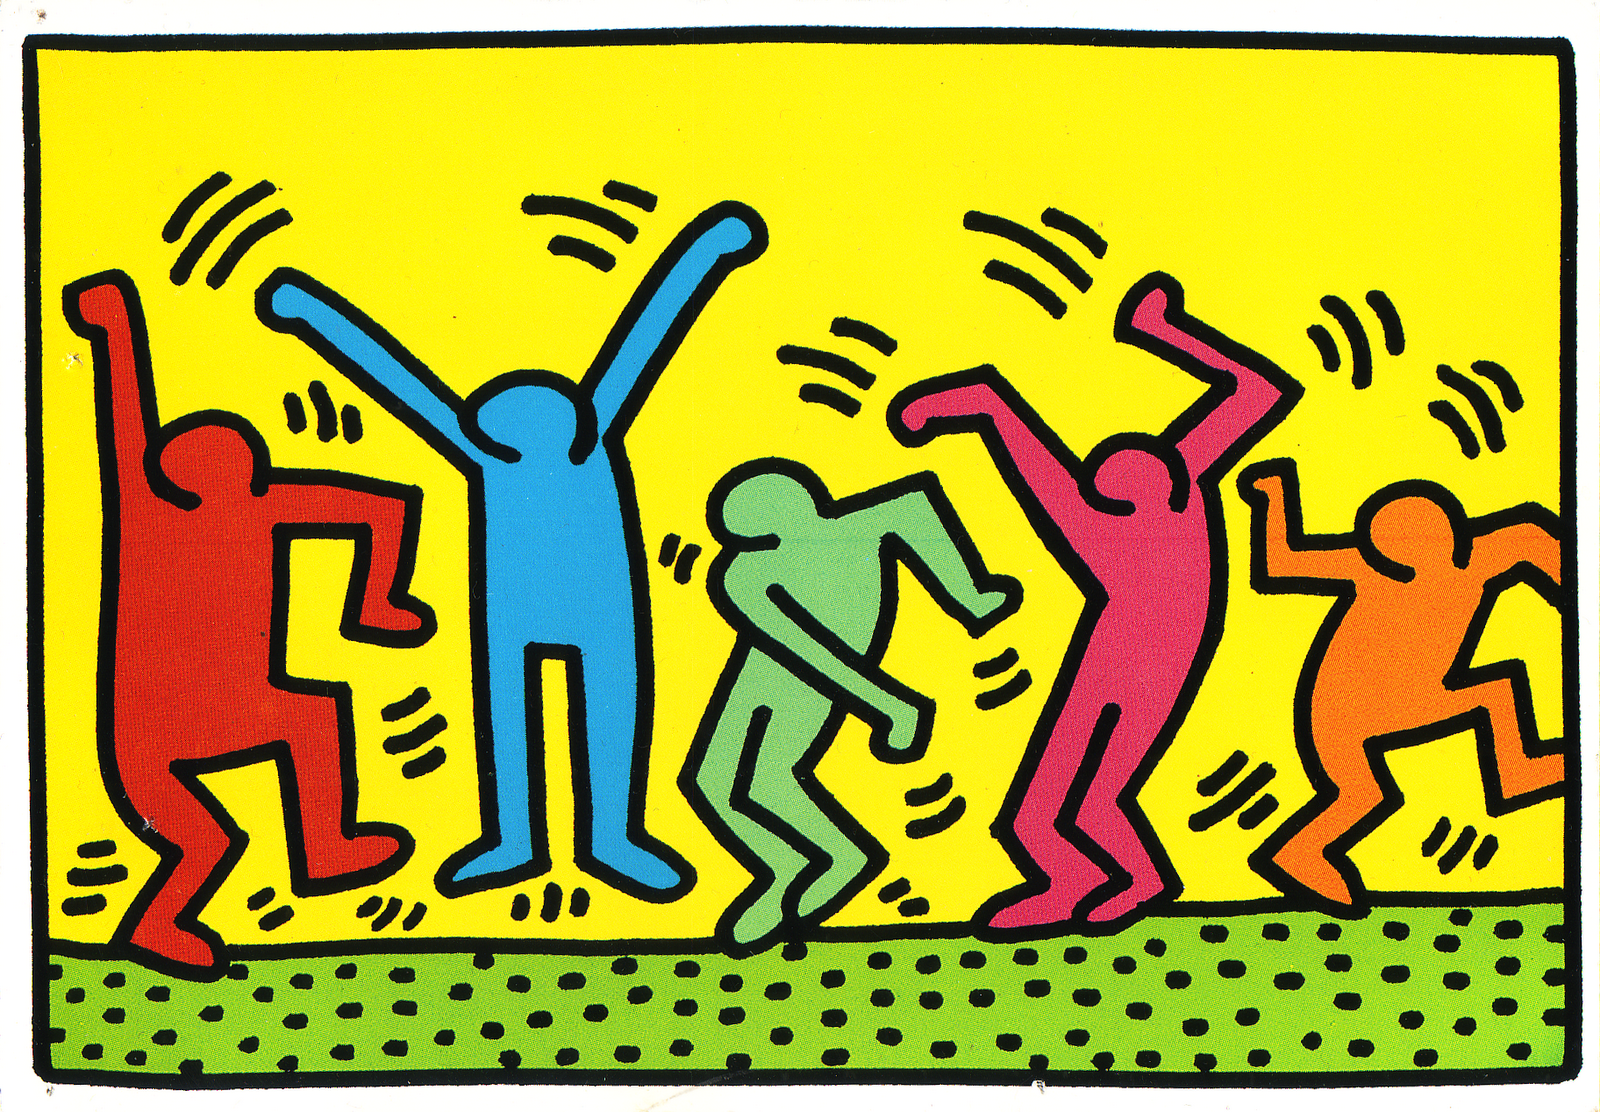 Keith Haring lover forever.